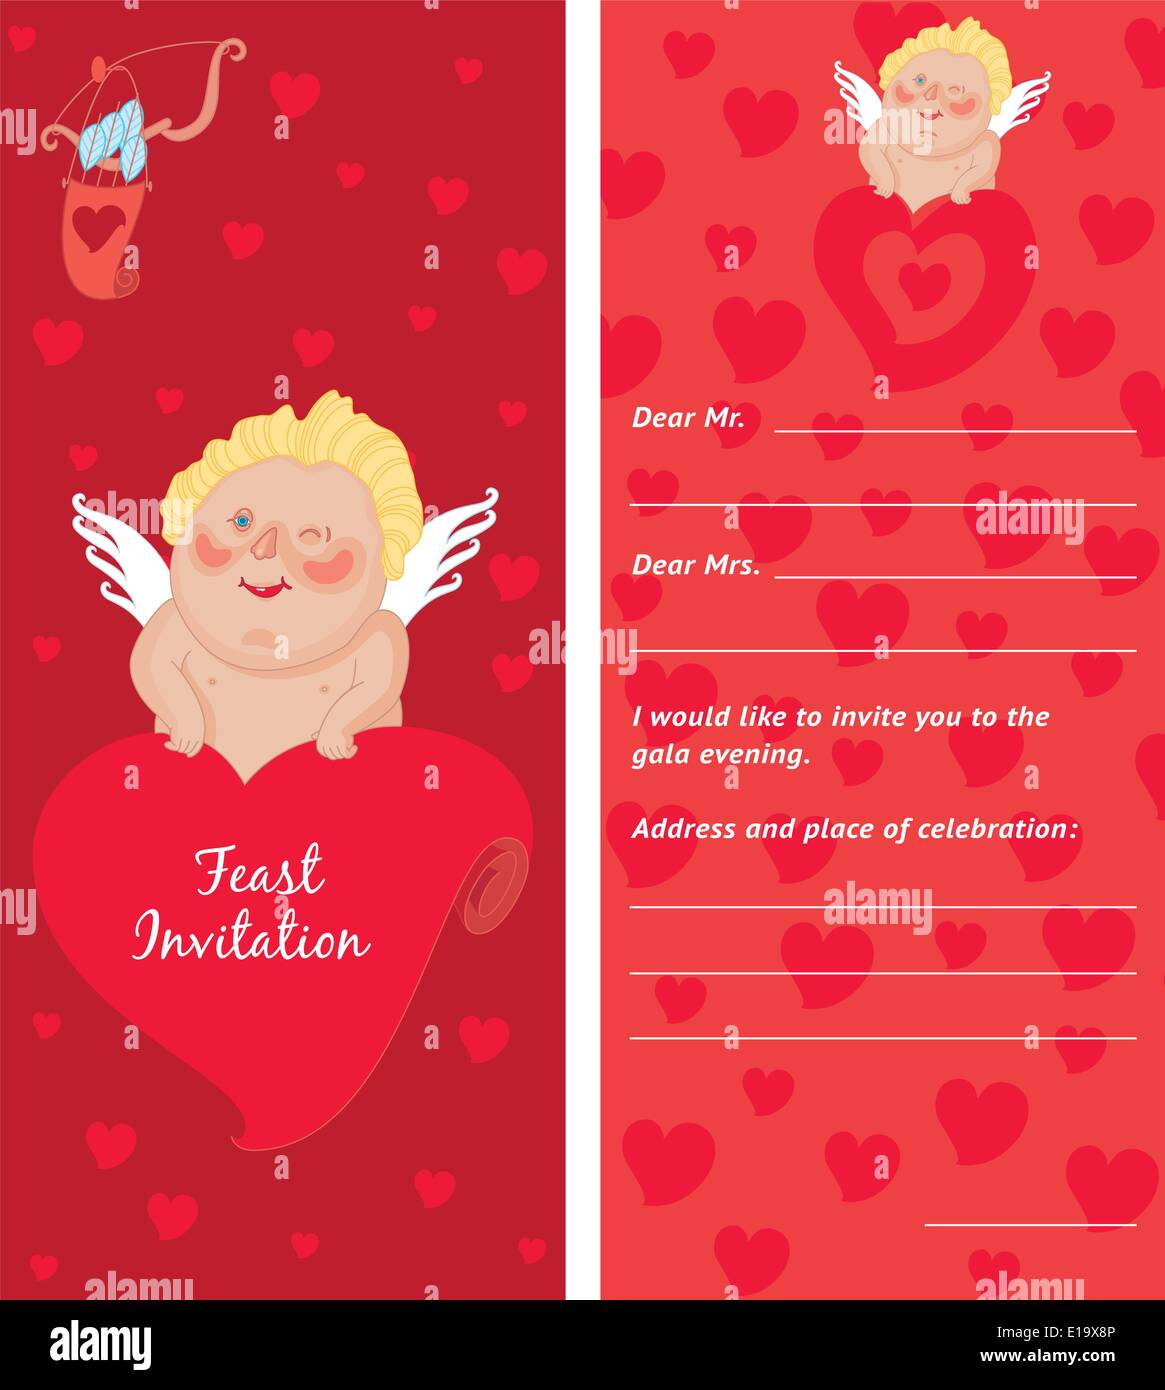 Cupid with a letter invitation template valentines day postcard cupid with a letter invitation template valentines day postcard spiritdancerdesigns Images